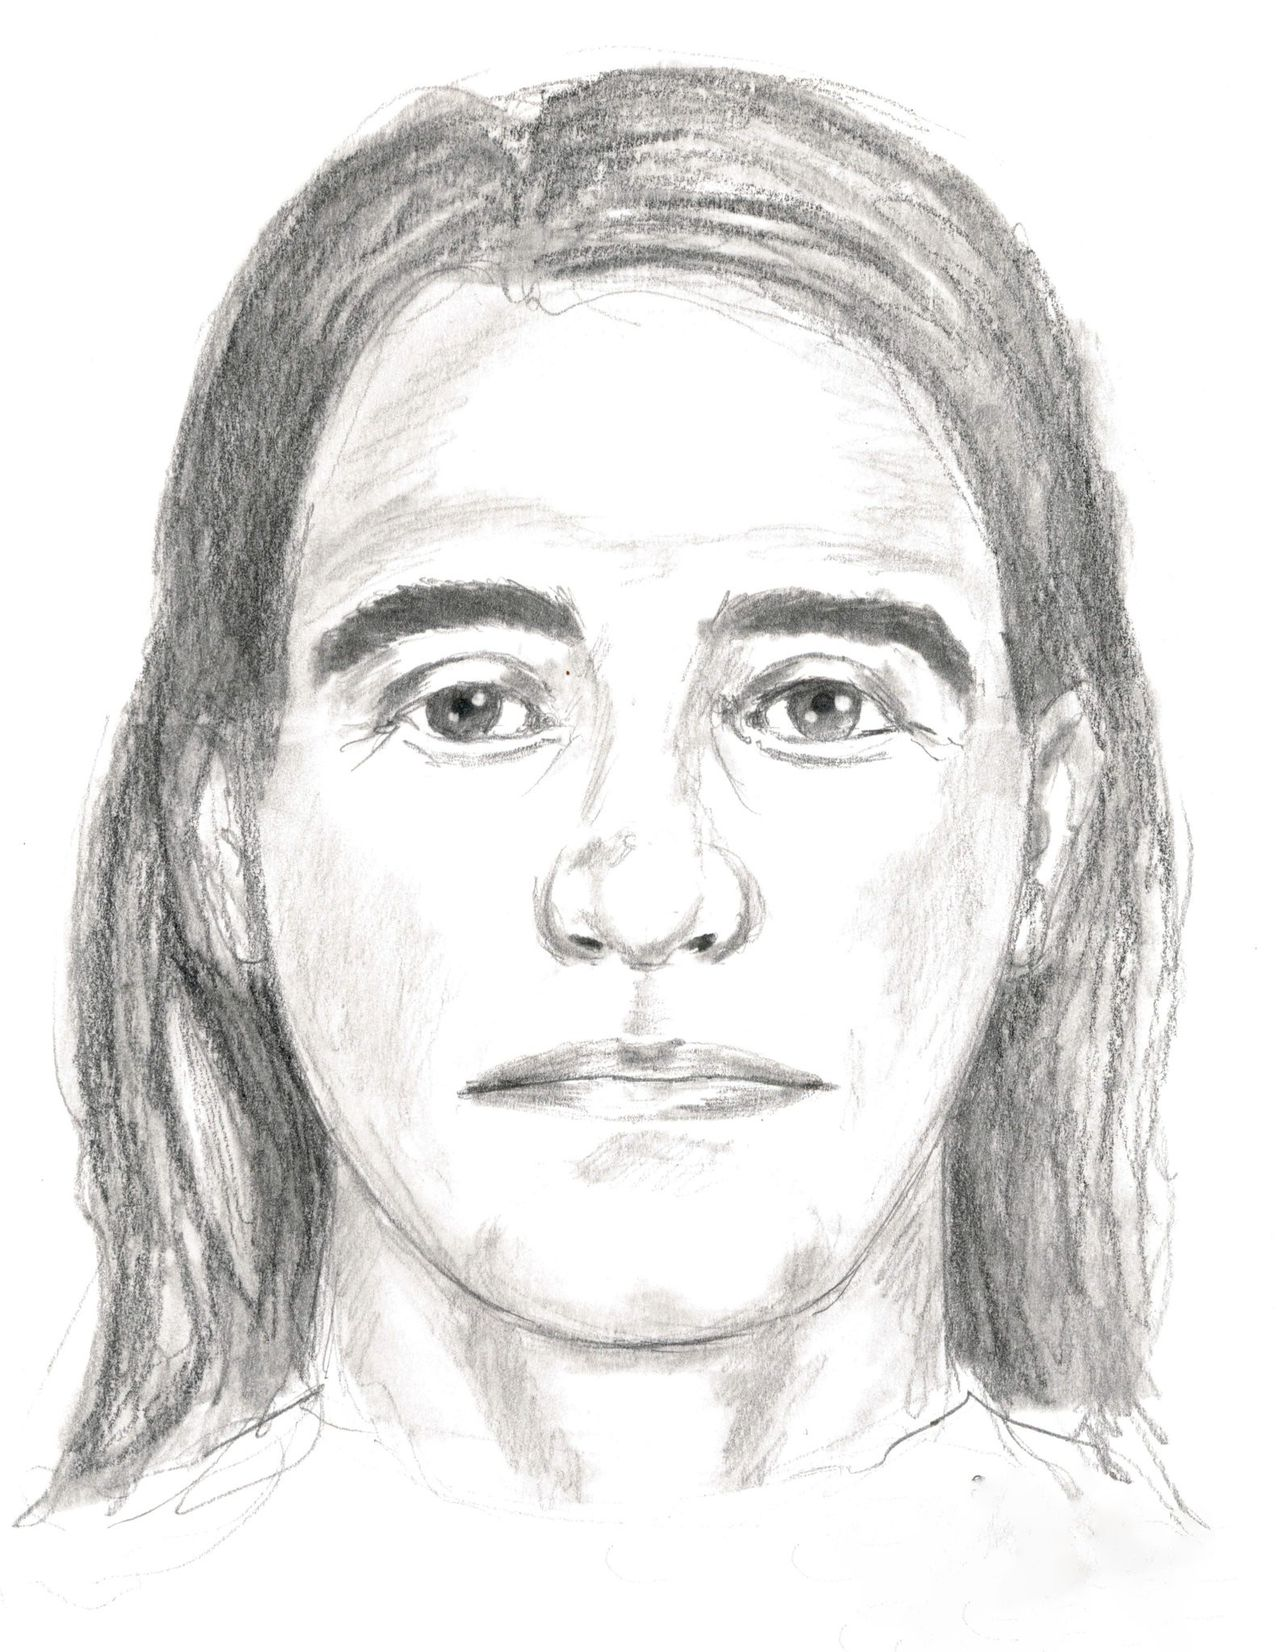 Fanno Creek Trail sexual assault reported: Police seek